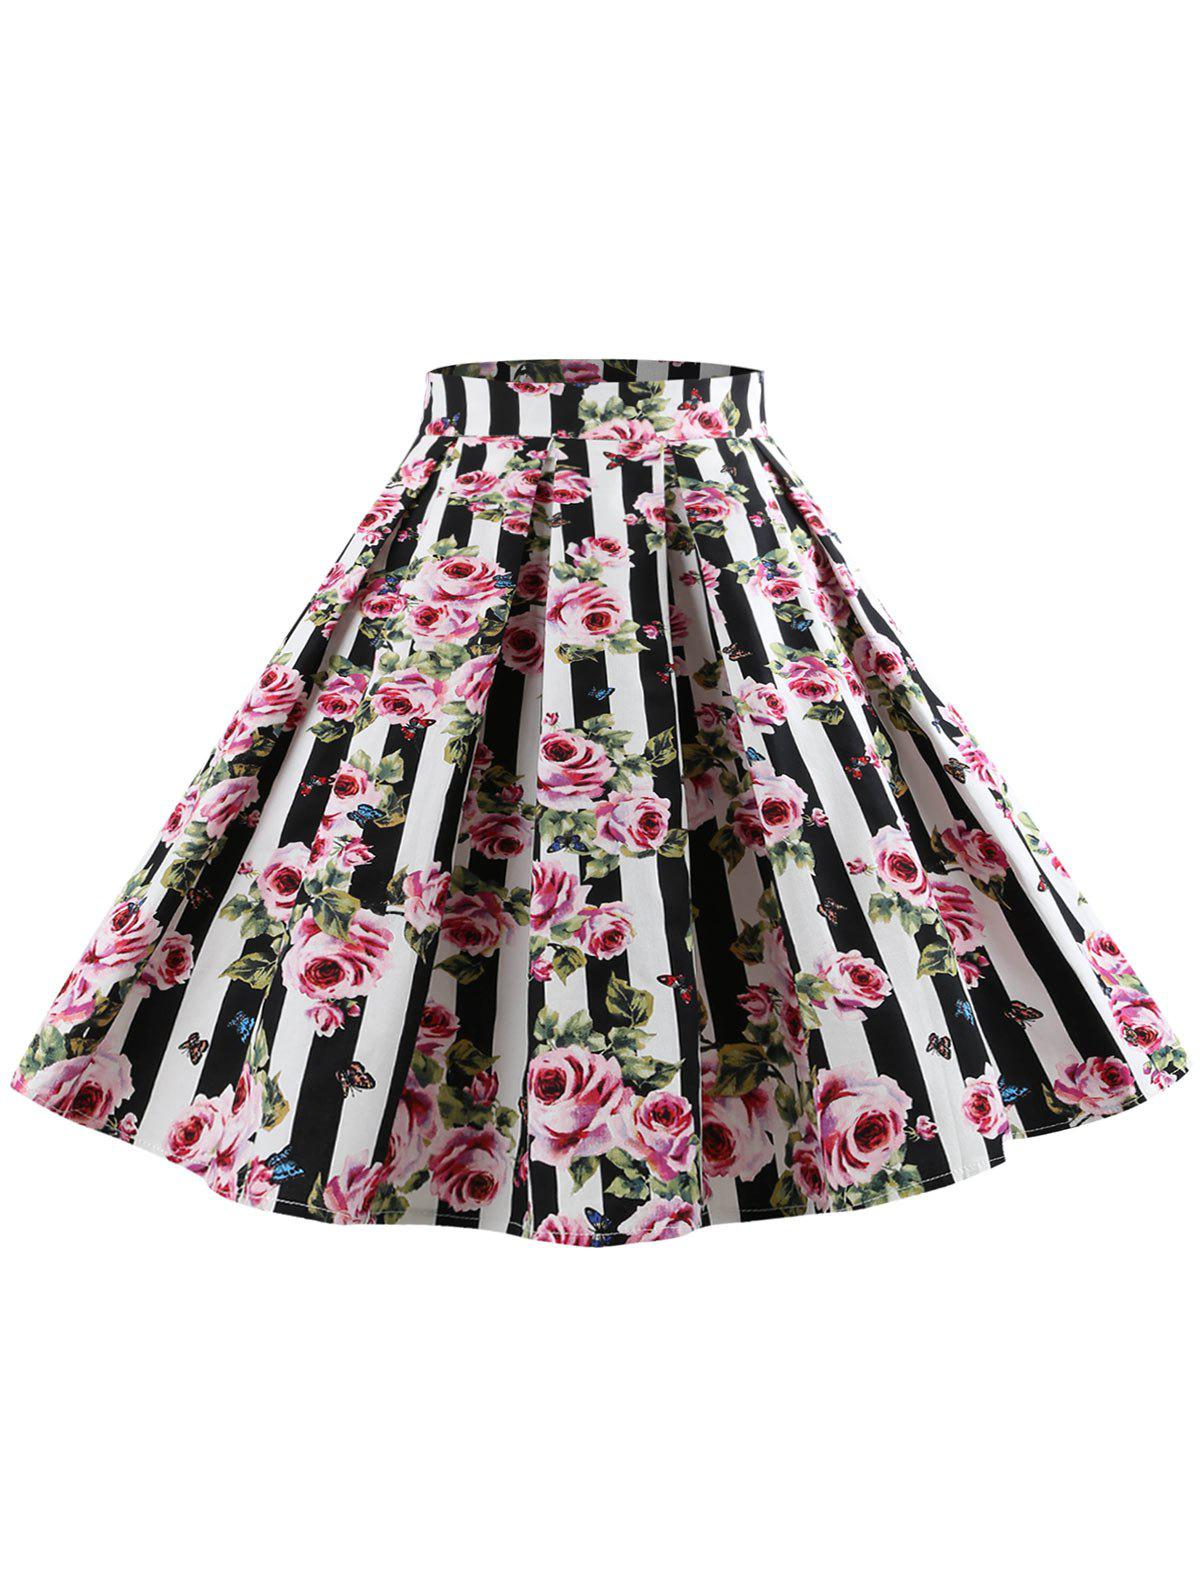 Discount Floral Print Zipper Waist Skirt